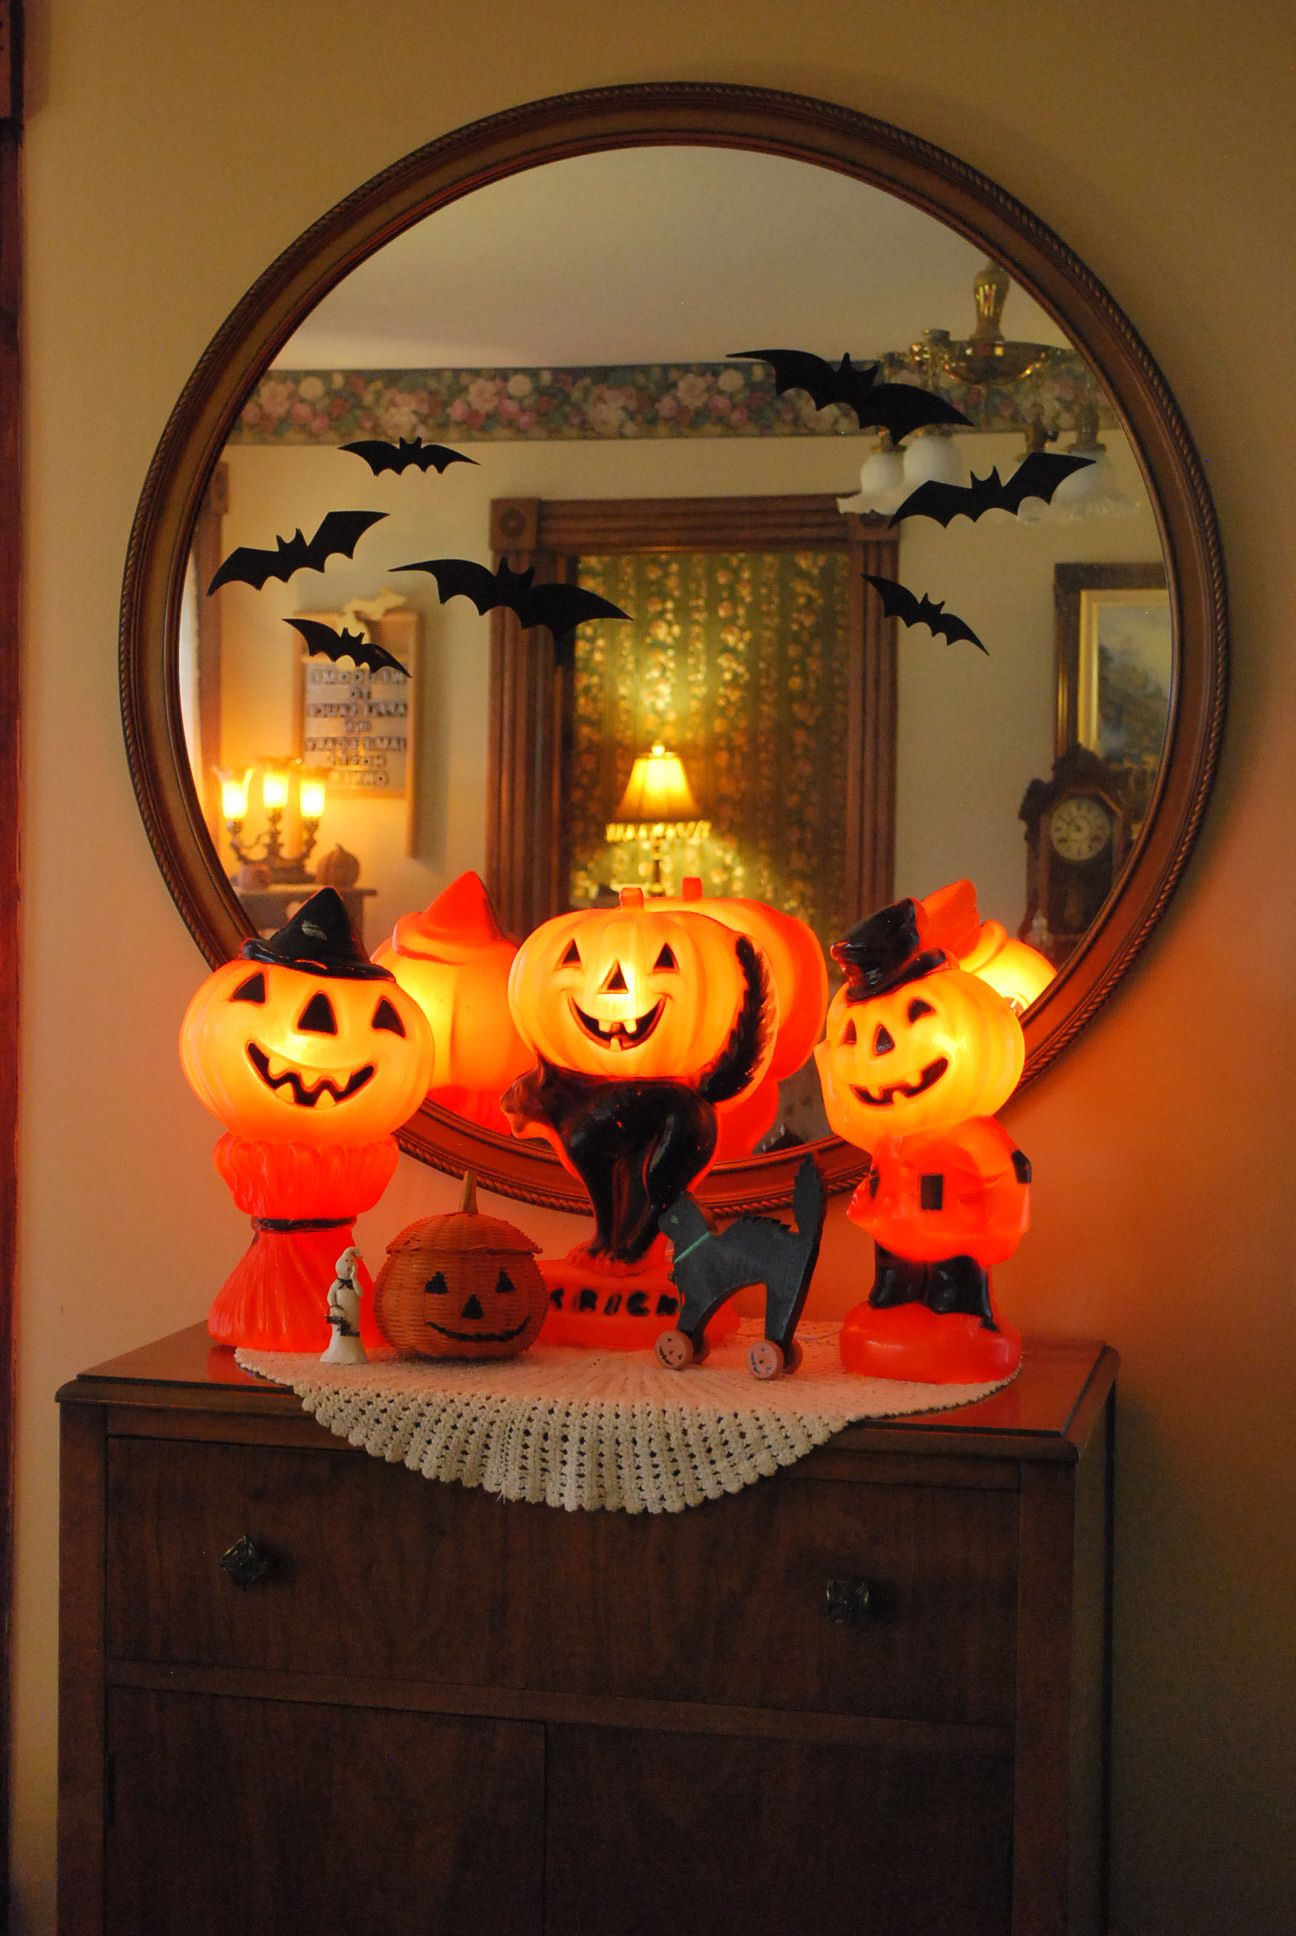 A Vintage Lighted Plastic Pumpkin Collection Vintage Halloween Decorations Halloween Lights Vintage Halloween